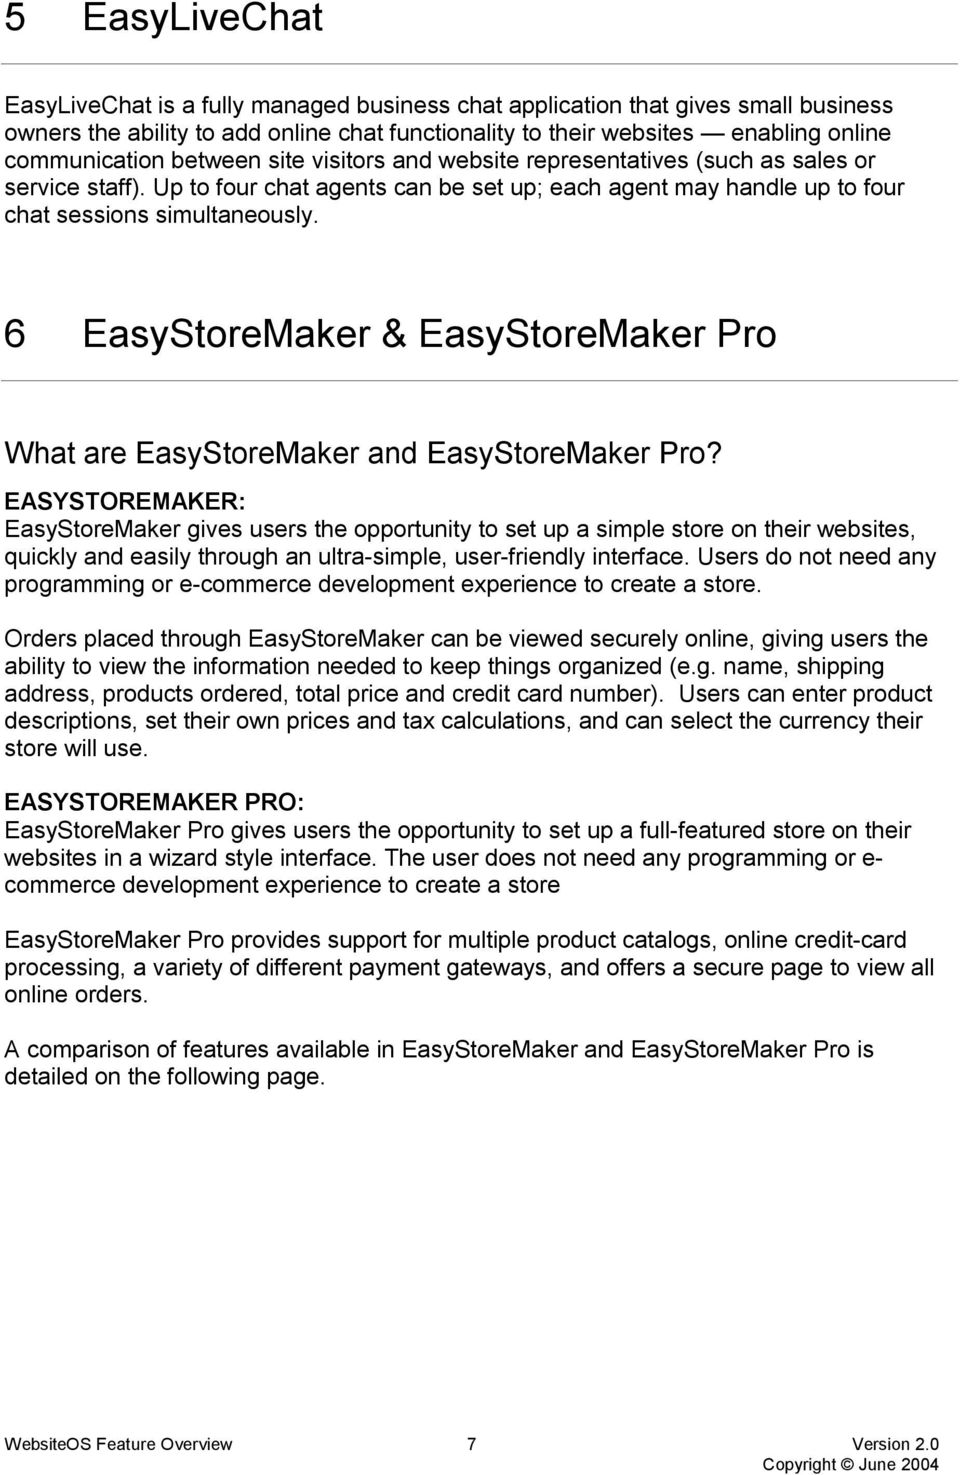 6 EasyStoreMaker & EasyStoreMaker Pro What are EasyStoreMaker and EasyStoreMaker Pro?